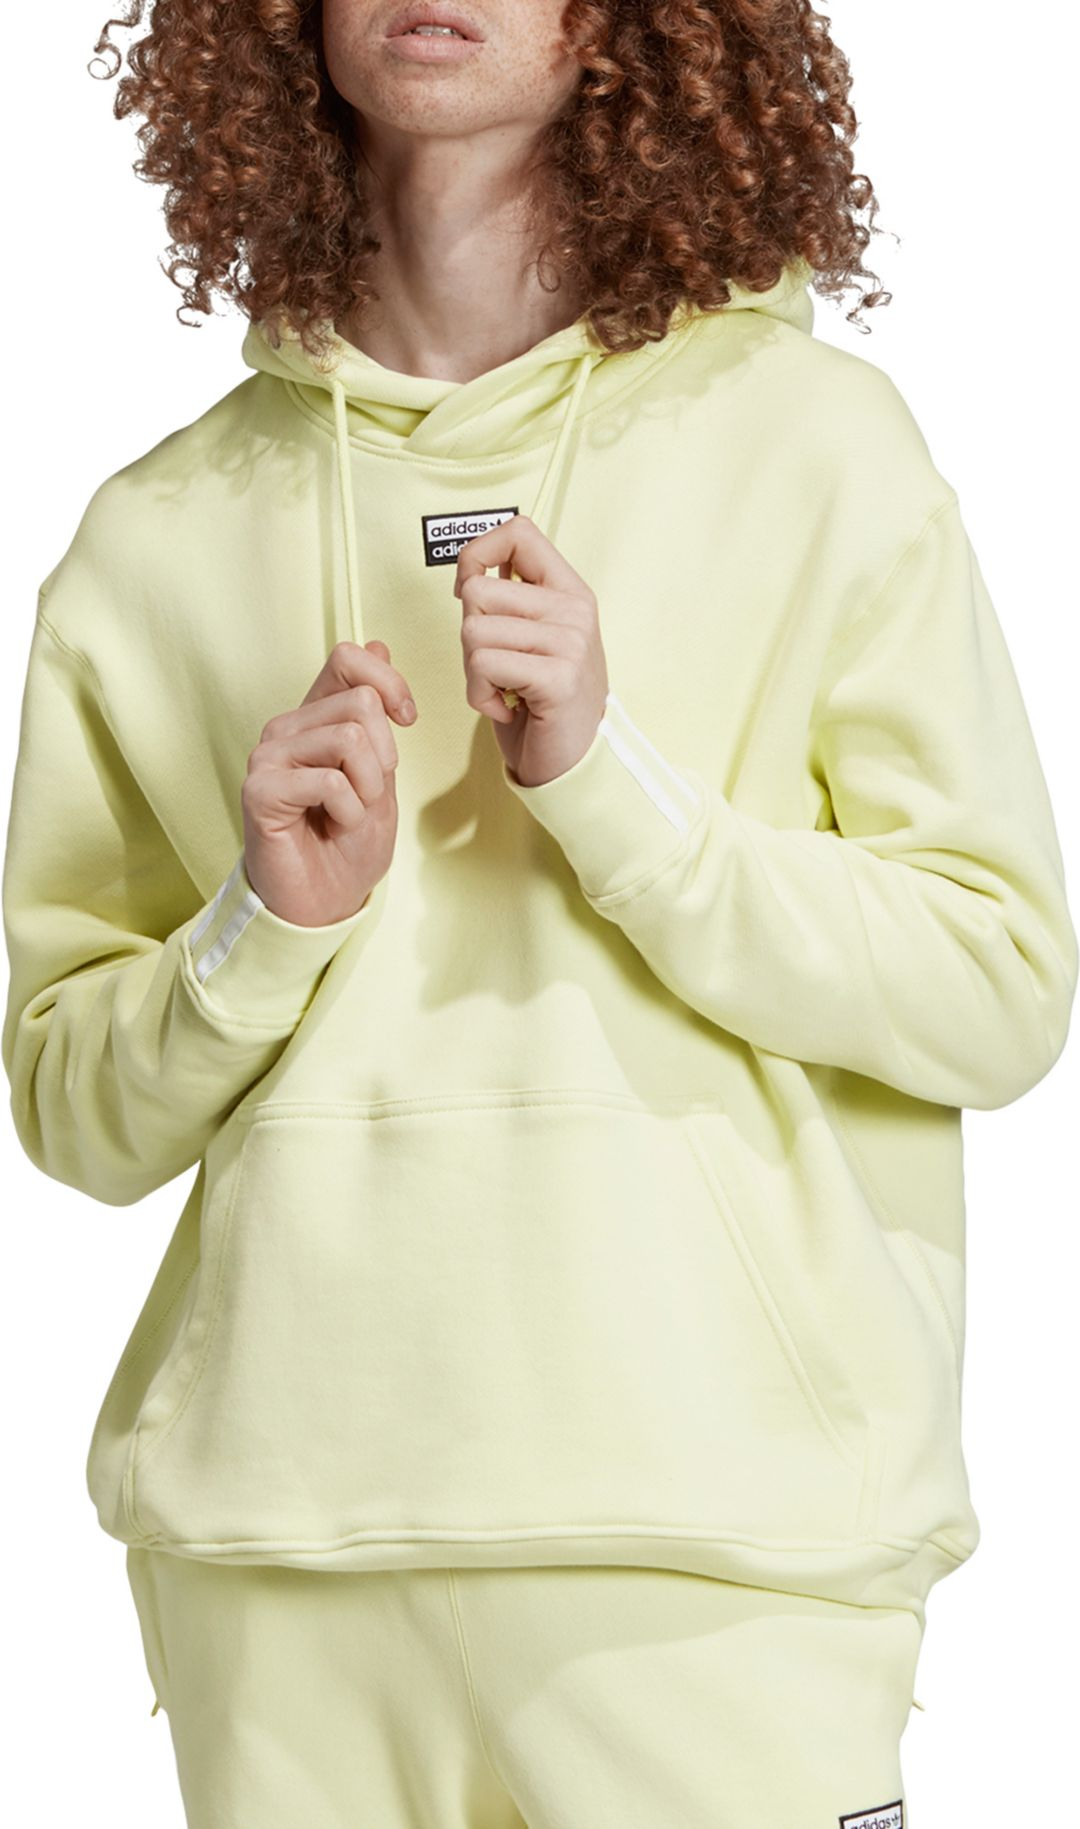 Promotions Cheap Adidas Originals Zip Up Hoodie with Classic